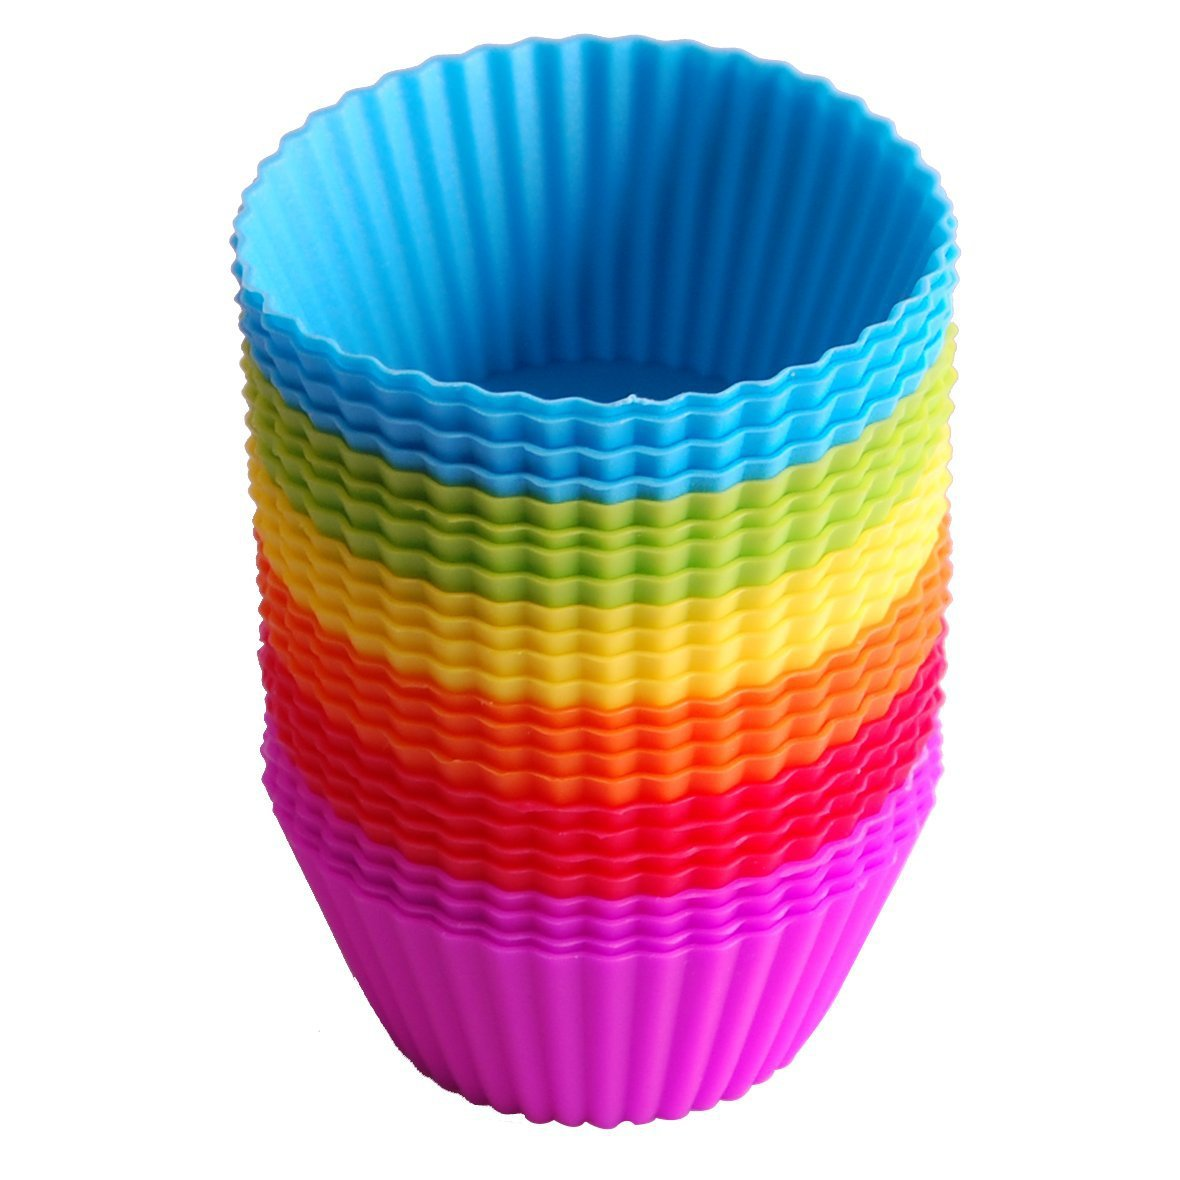 24-Pack Reusable Silicone Baking Cups Cupcake Liners - Muffin Cups Cake Molds